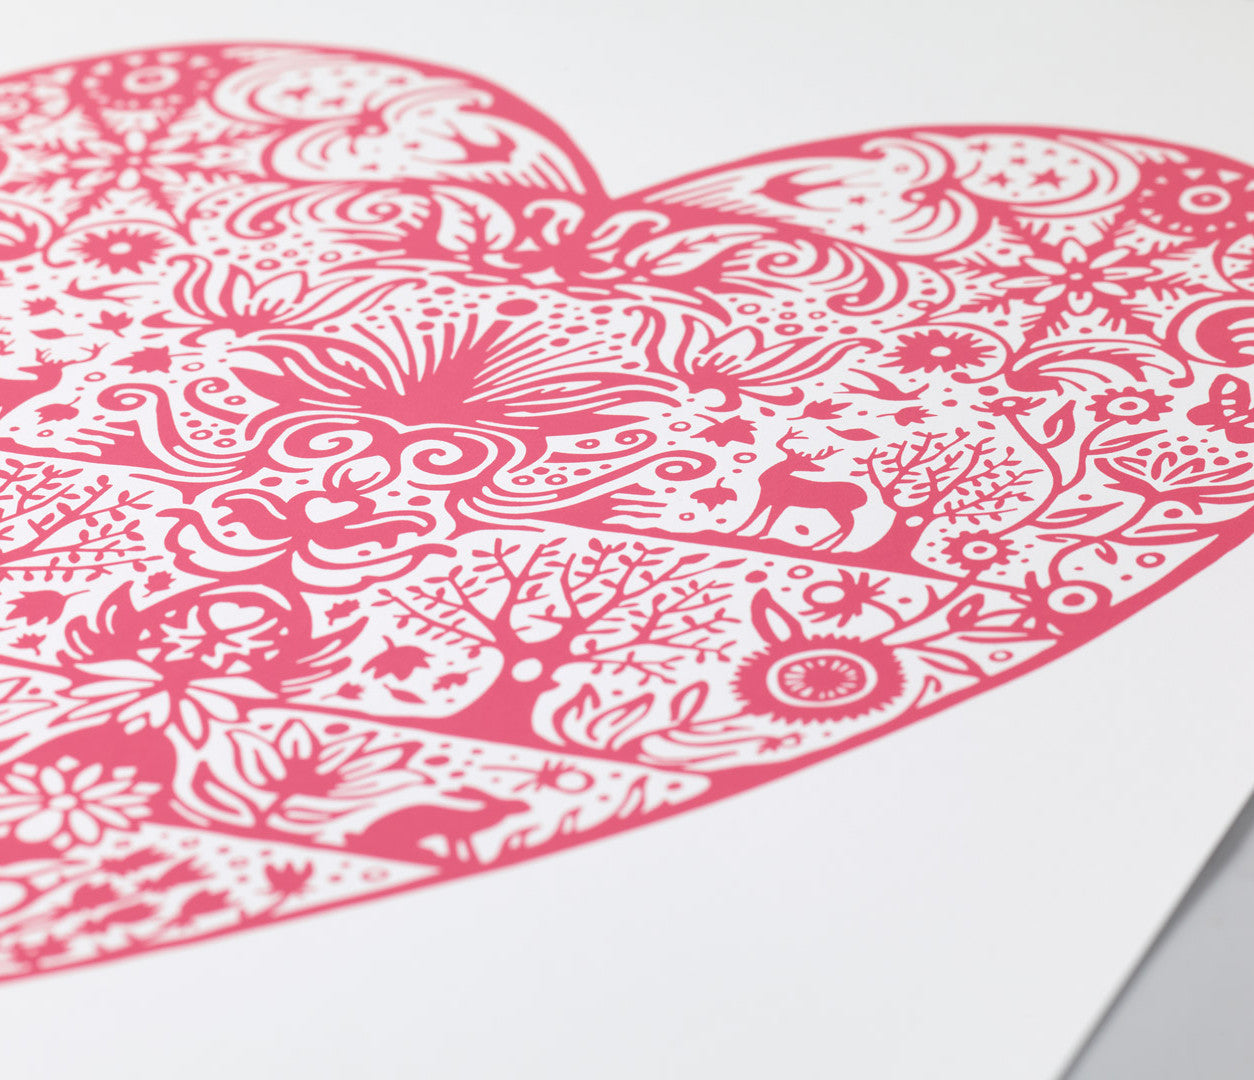 Close Up of My Heart Print in Raspberry Sorbet Pink